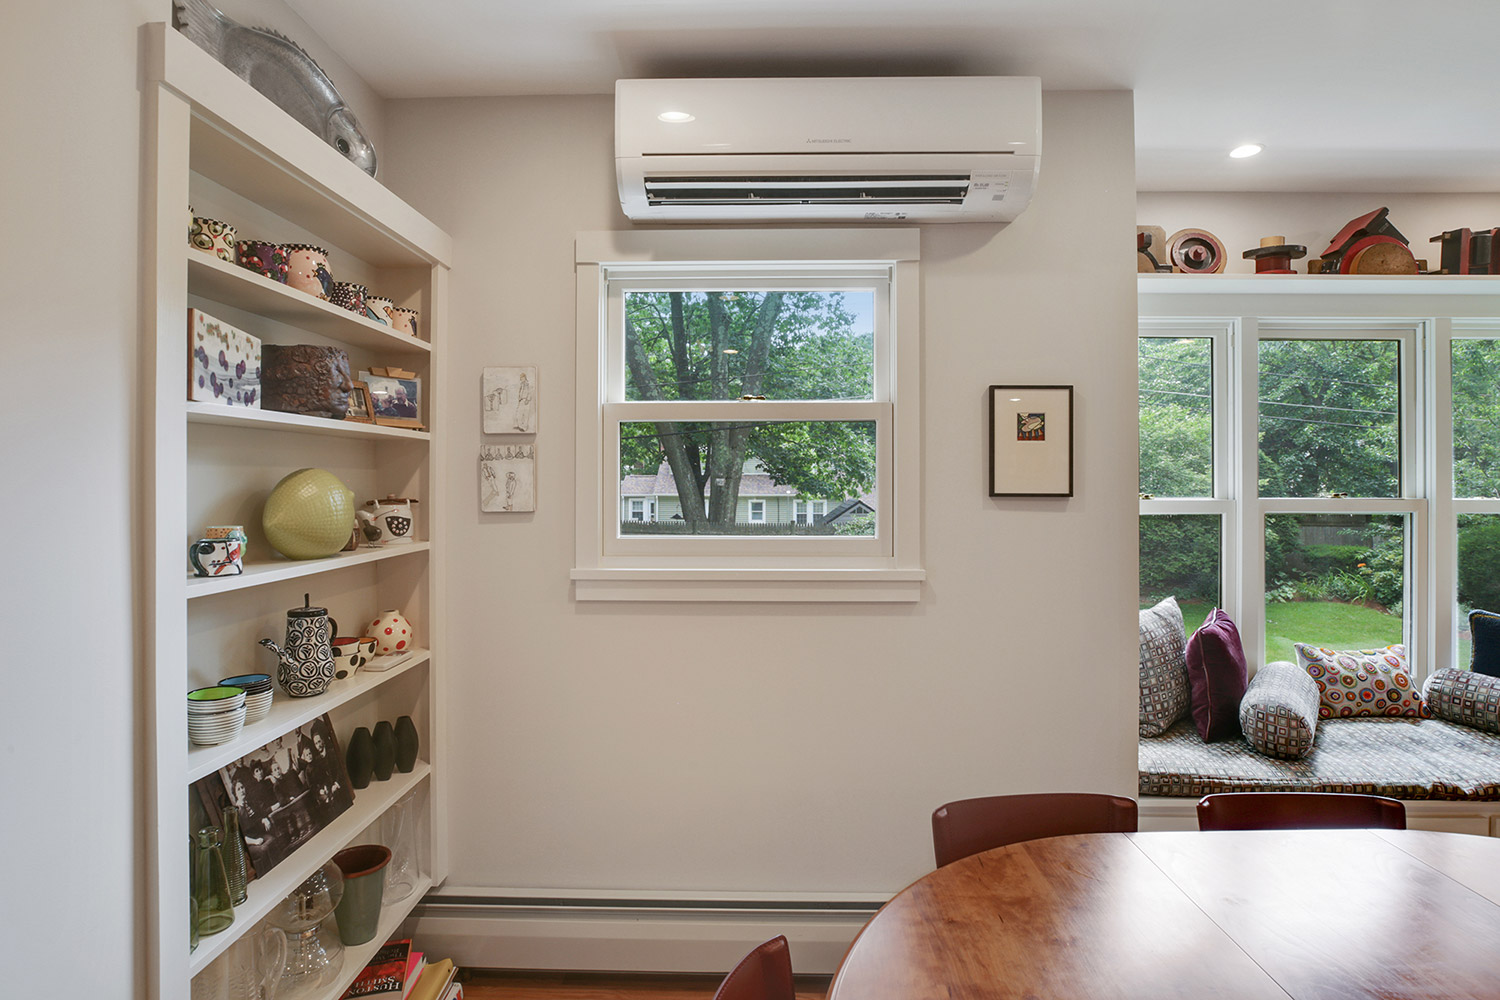 Image of a ductless unit